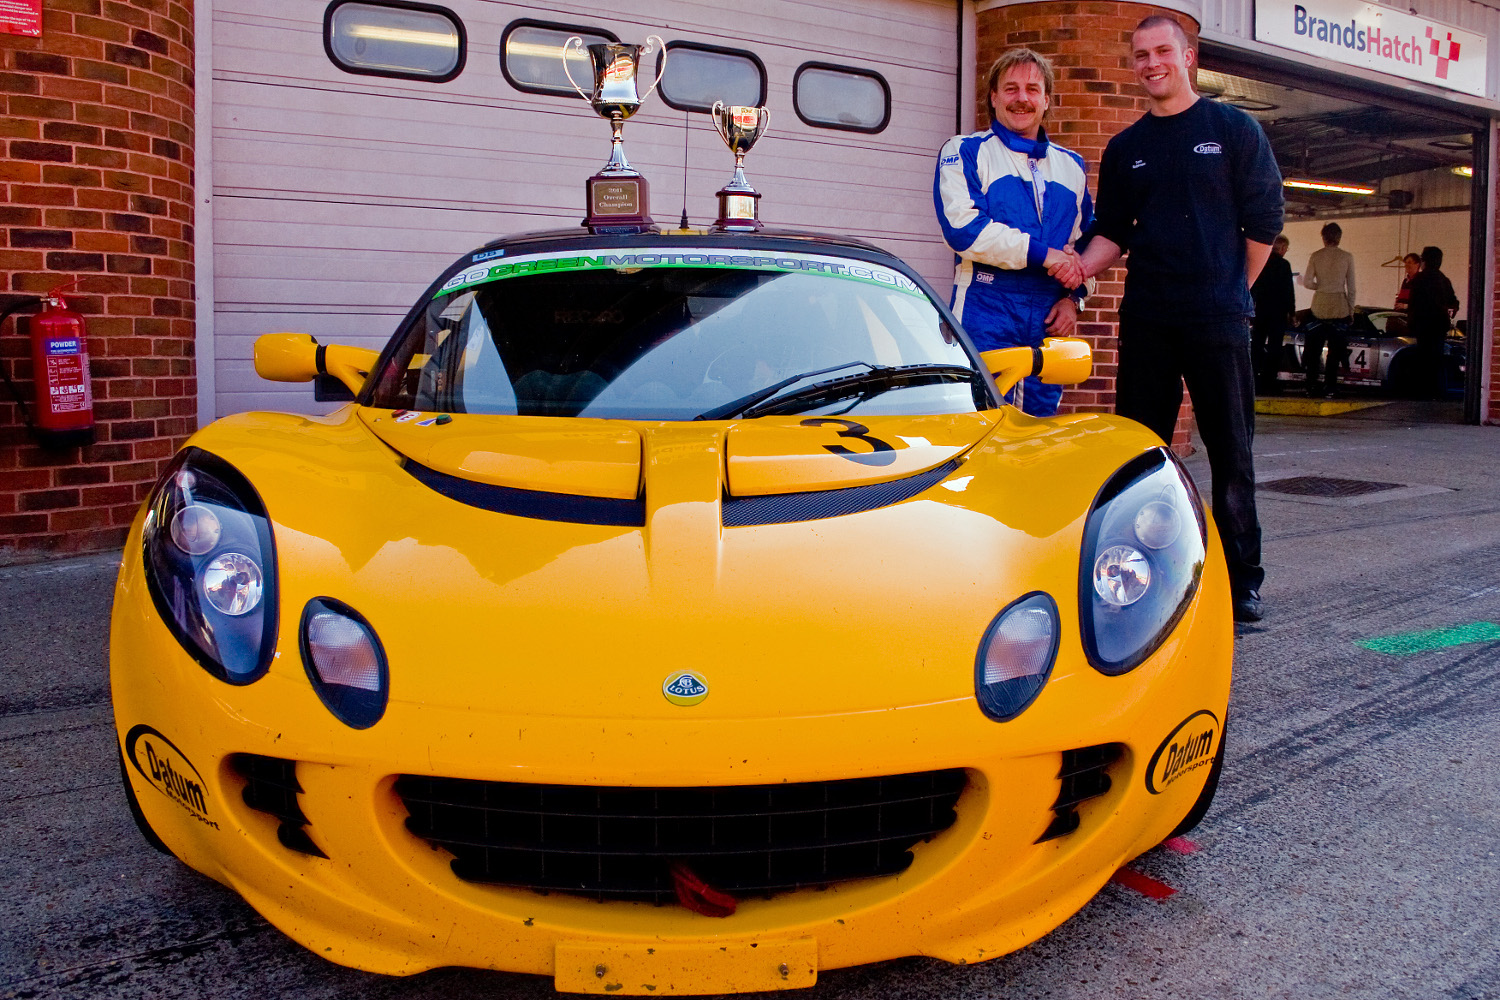 MSVR News - Quick speeds to Lotus Cup UK title in dramatic fashion